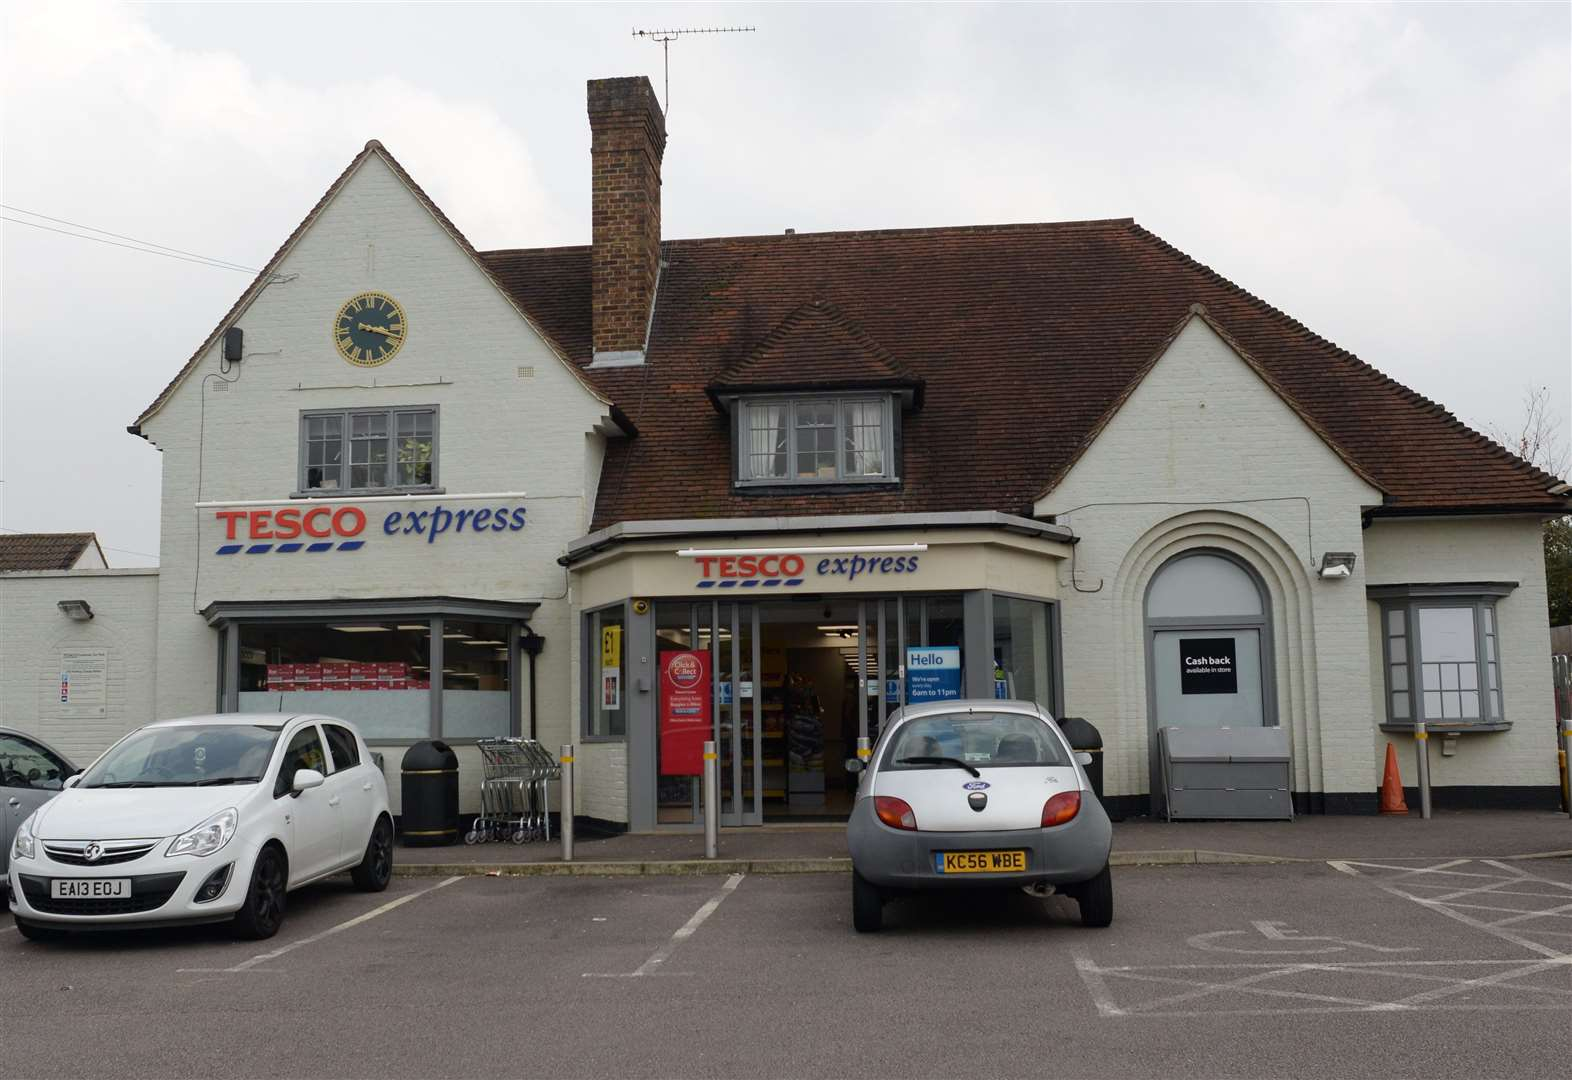 Tesco Express stores in Stortford and Stansted raided by burglars